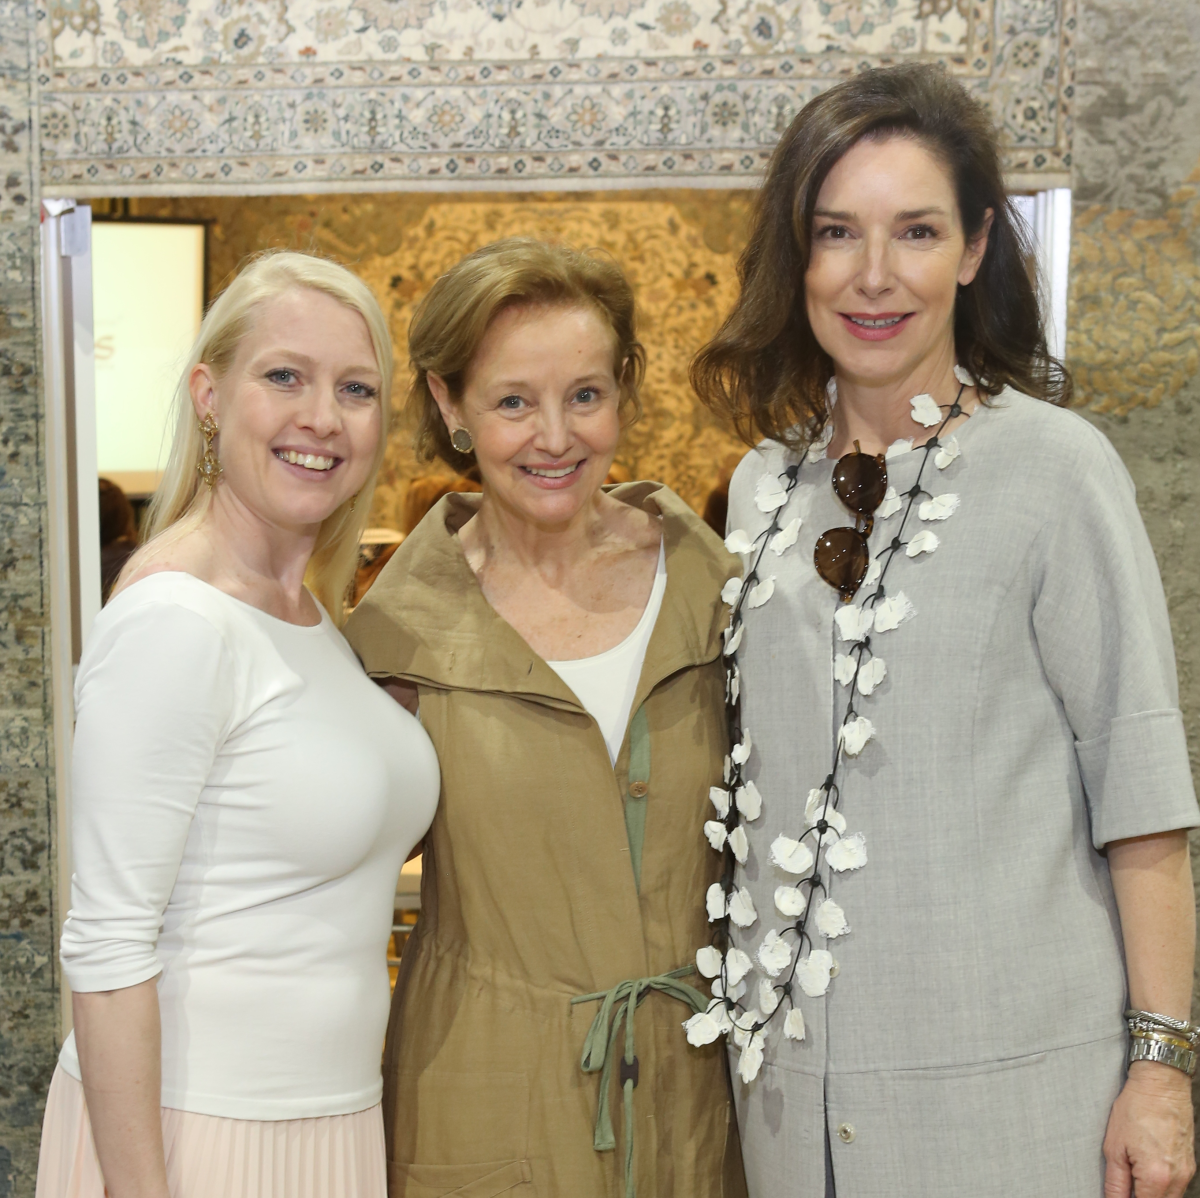 DCH Barry Dixon event, 4/2016, Misty Chambers, sandy Lucas, Suzanne Duin